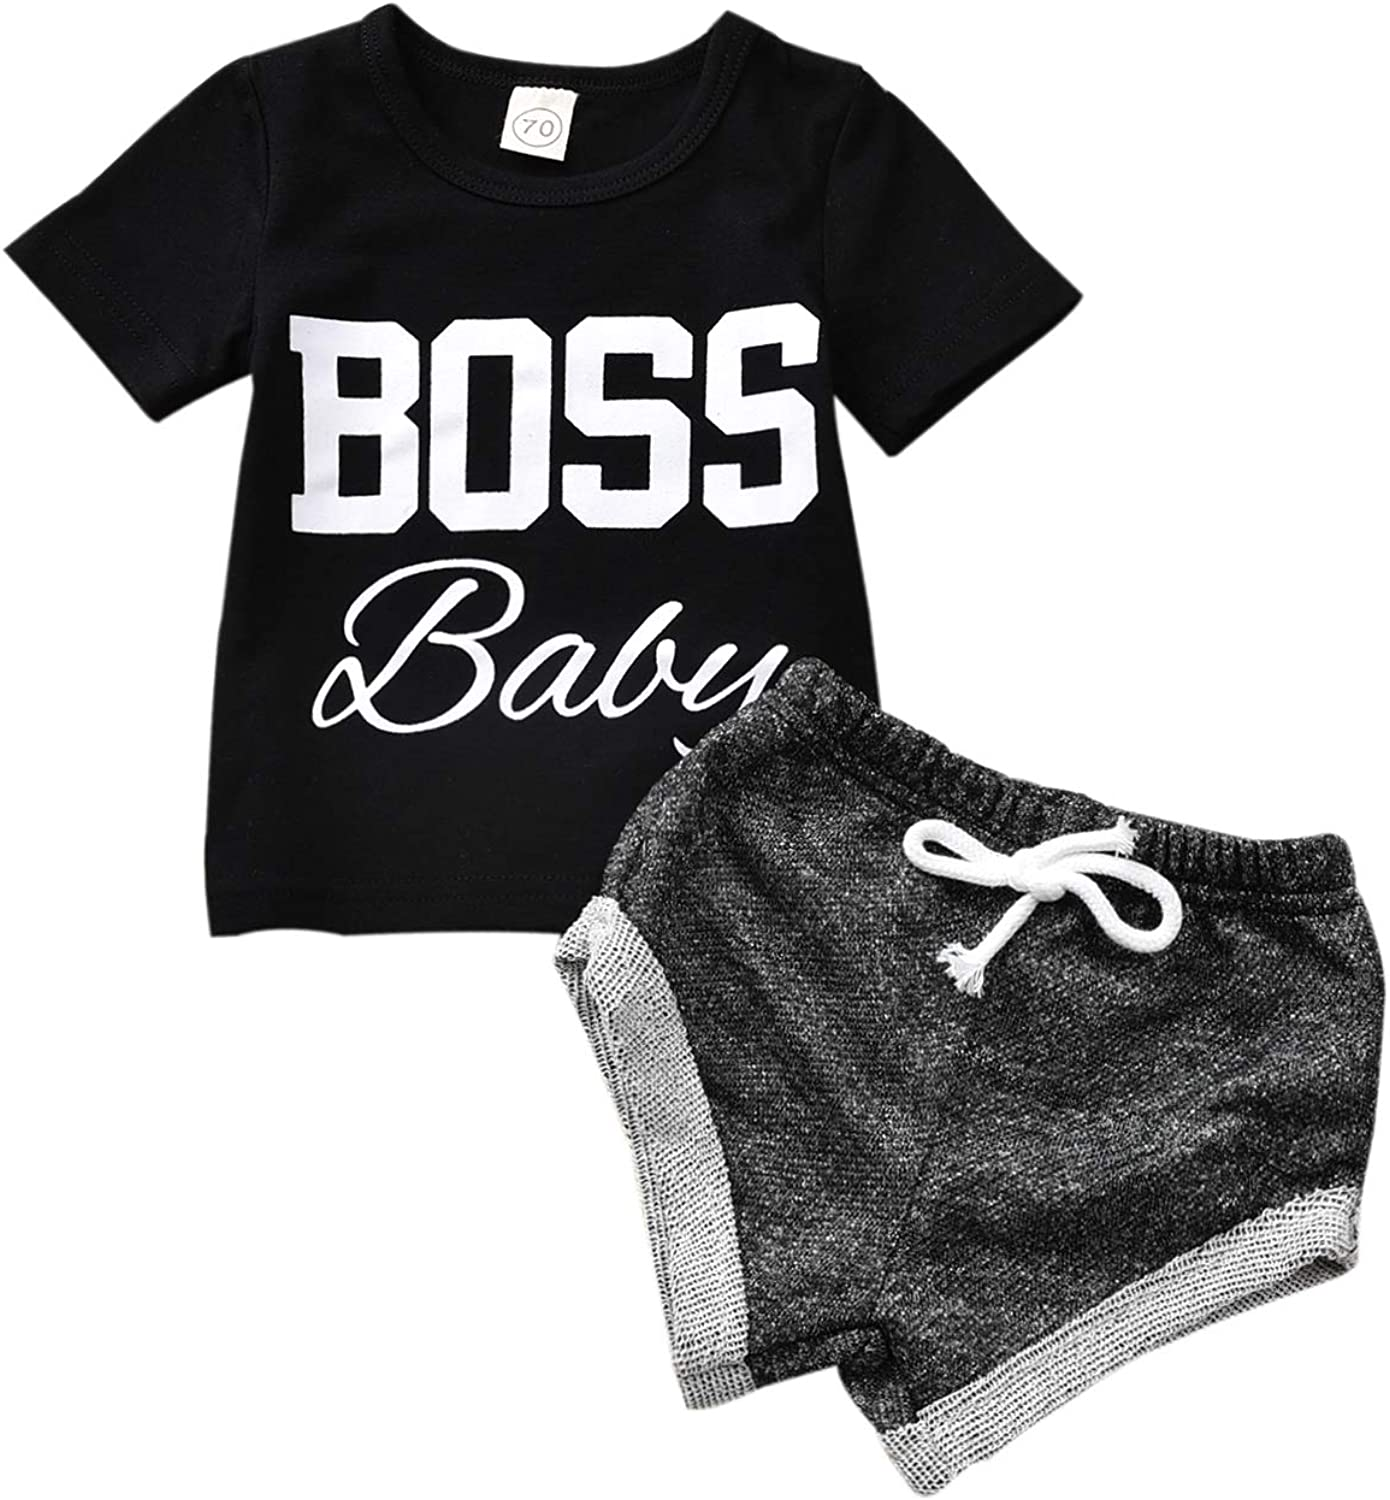 Baby Boys' Shorts Sets, Toddler Baby Infant Boy Clothes Boss Baby Tops +Mesh Pants Outfit Set